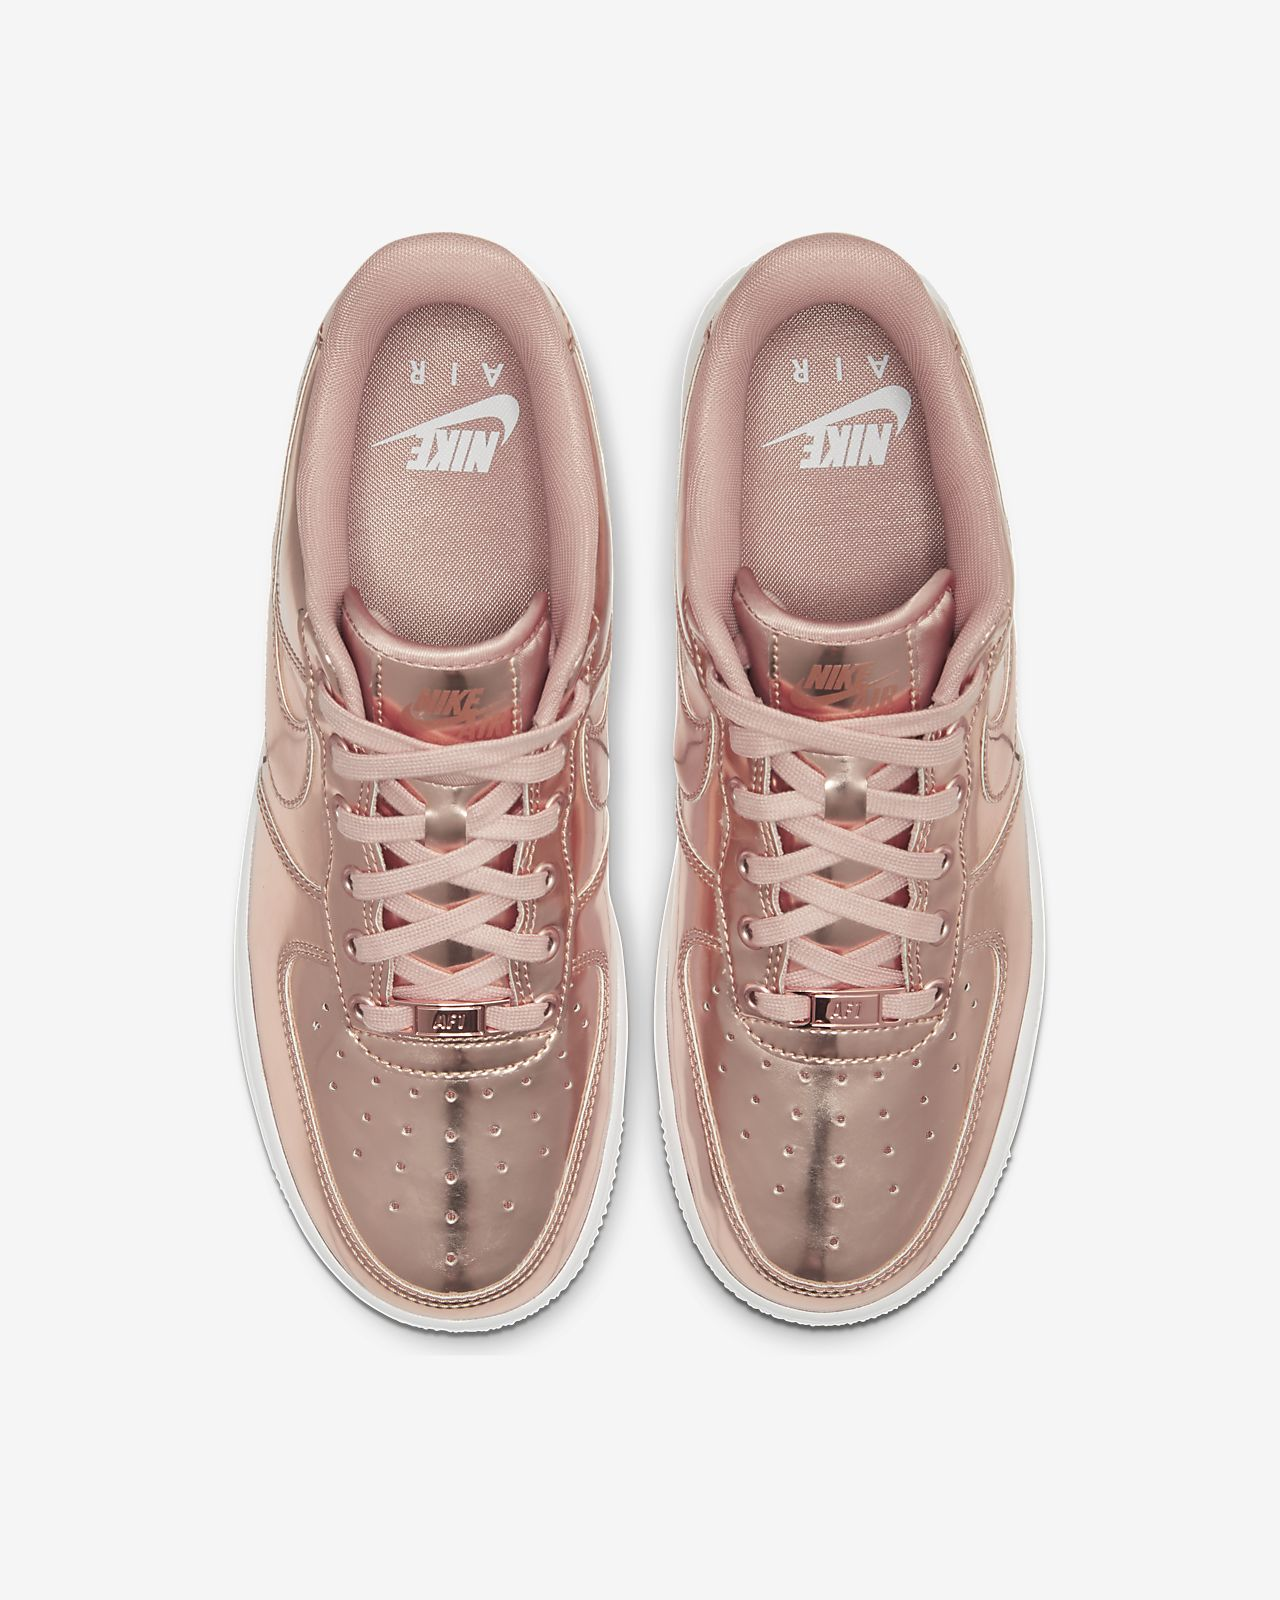 NIKE W AIR FORCE 1 '07 LUX | BEIGE WHITE PINK GOLD | 898889